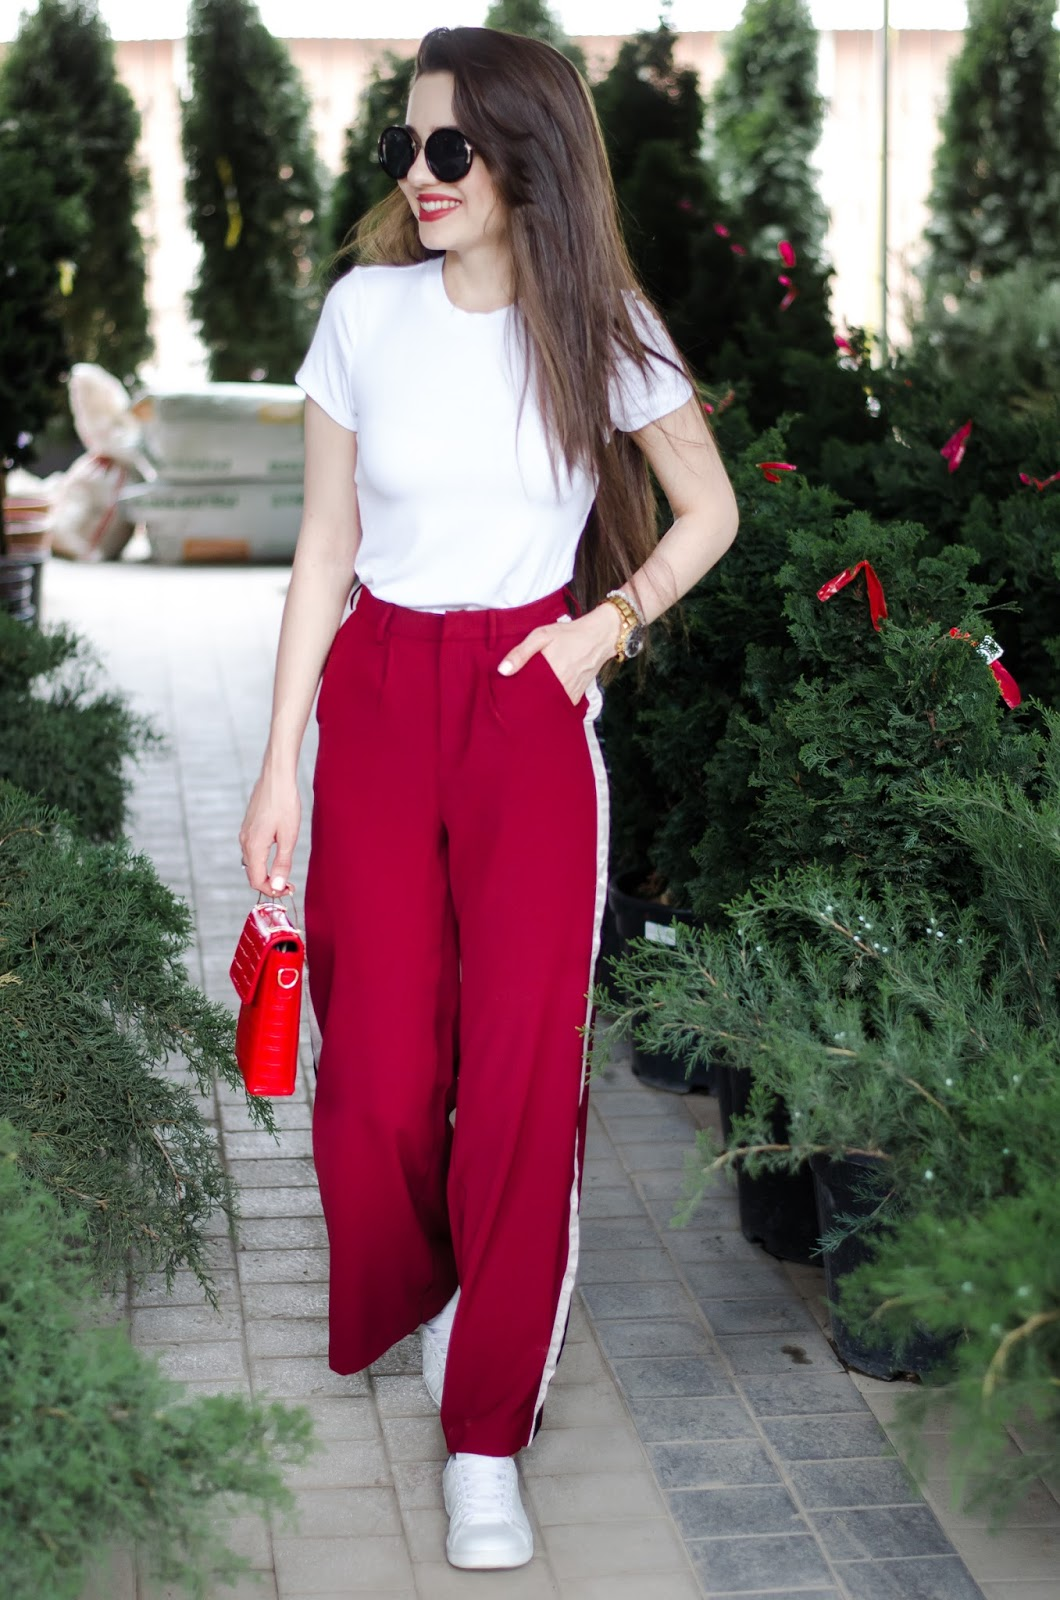 diyorasnotes diyora beta fashion blogger style outfitoftheday lookoftheday red wide leg pants white t-shirt red bag casual outfit white sneakers sport-chic